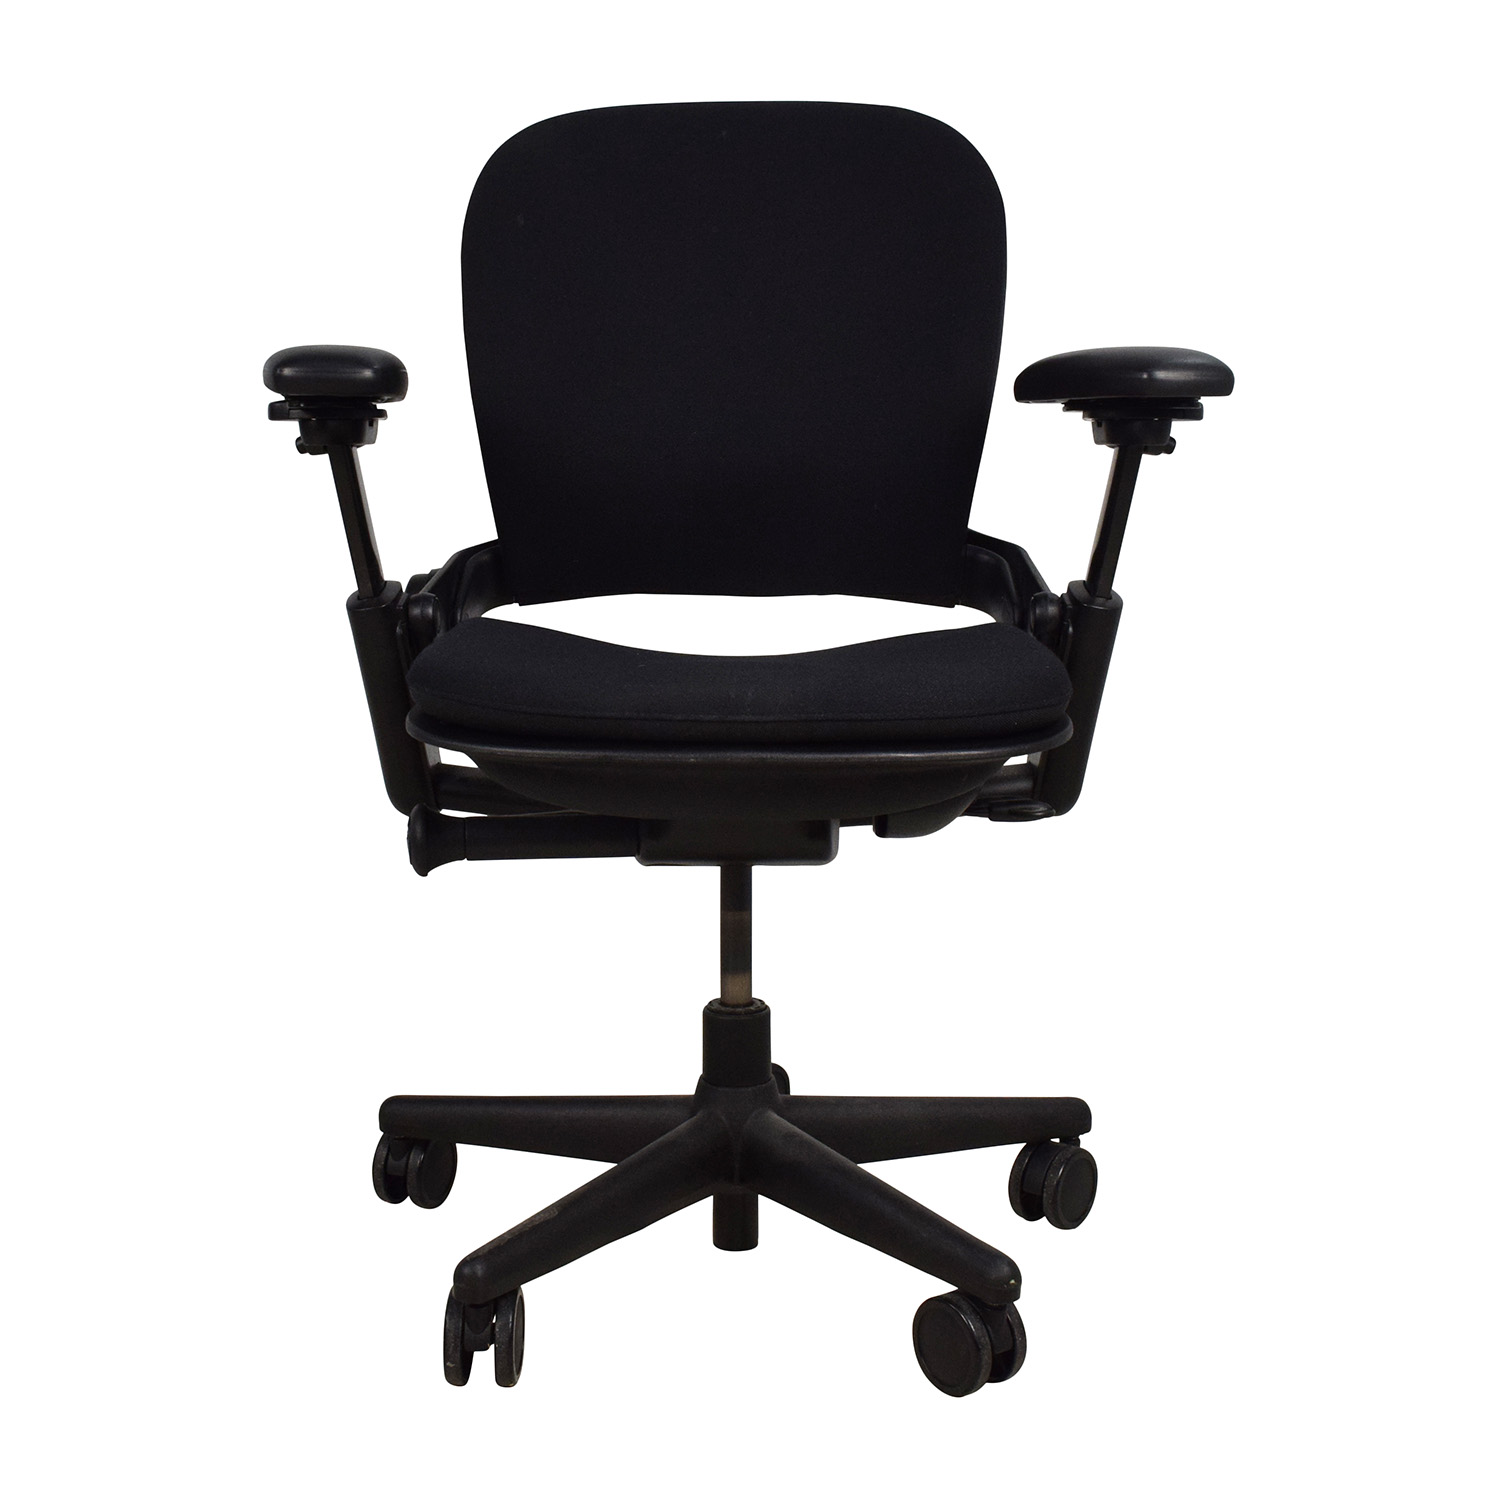 Adjustable Black Office Desk Chair for sale